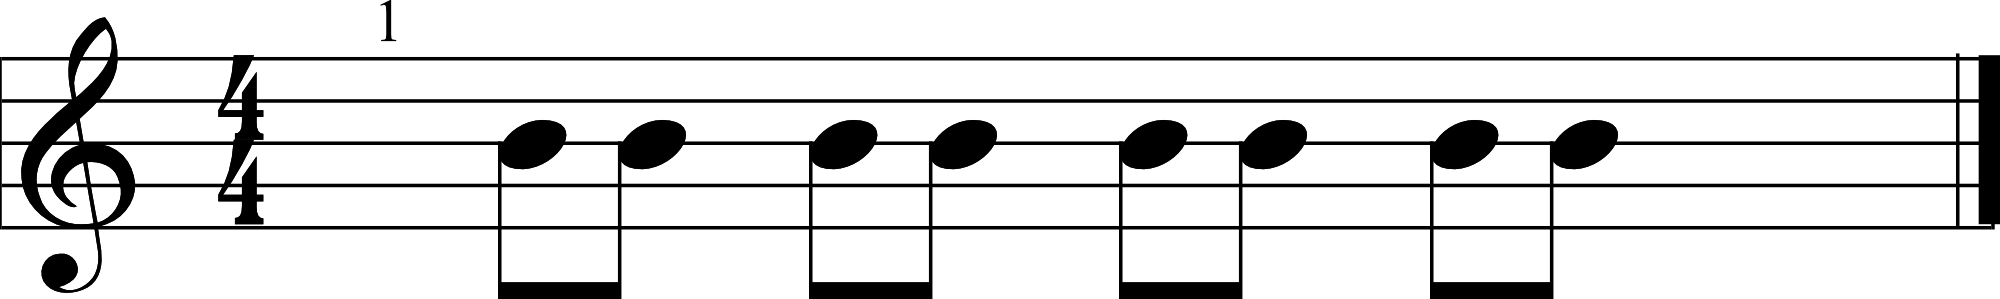 Eighth Note Example